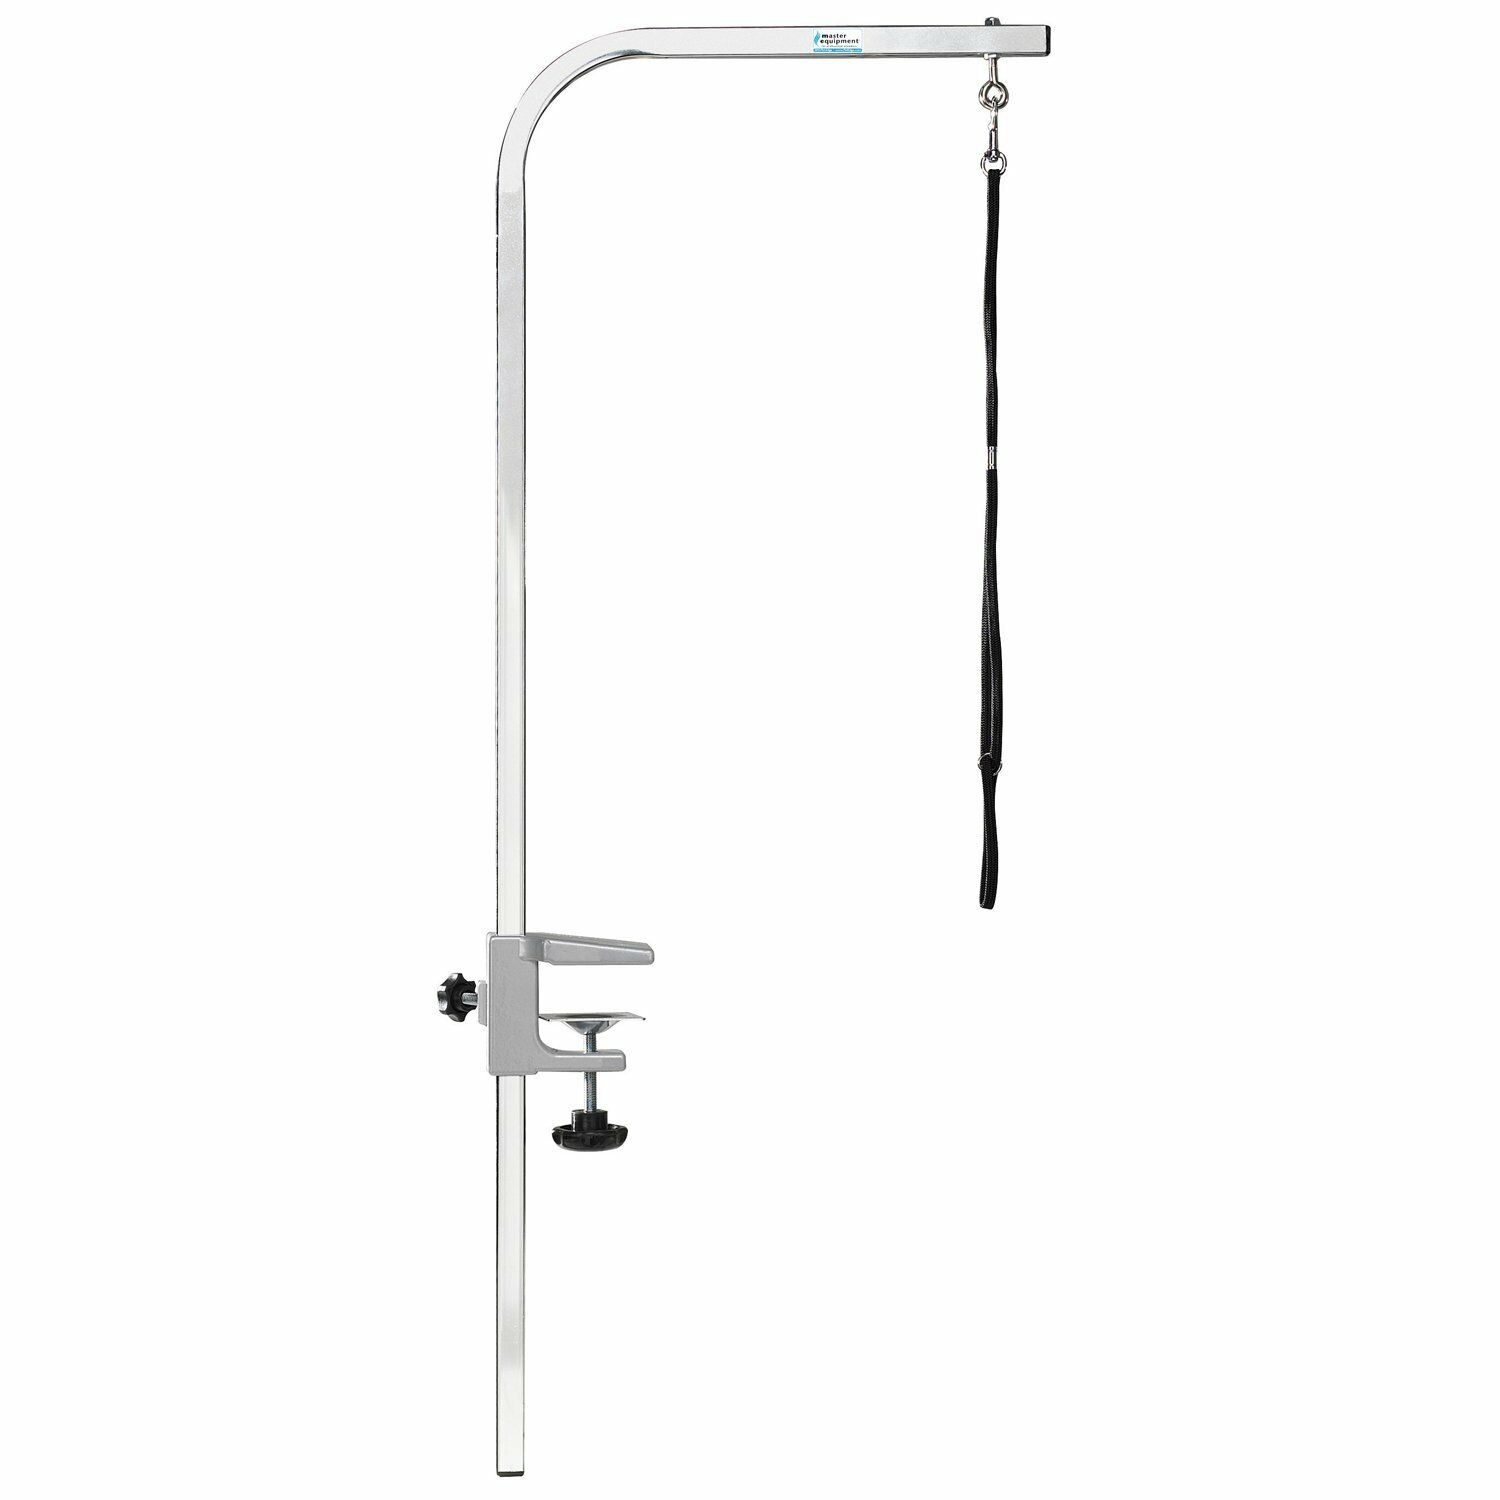 Master Equipment Grooming Arm With Clamp 36 inch Attach To Most Grooming Tables